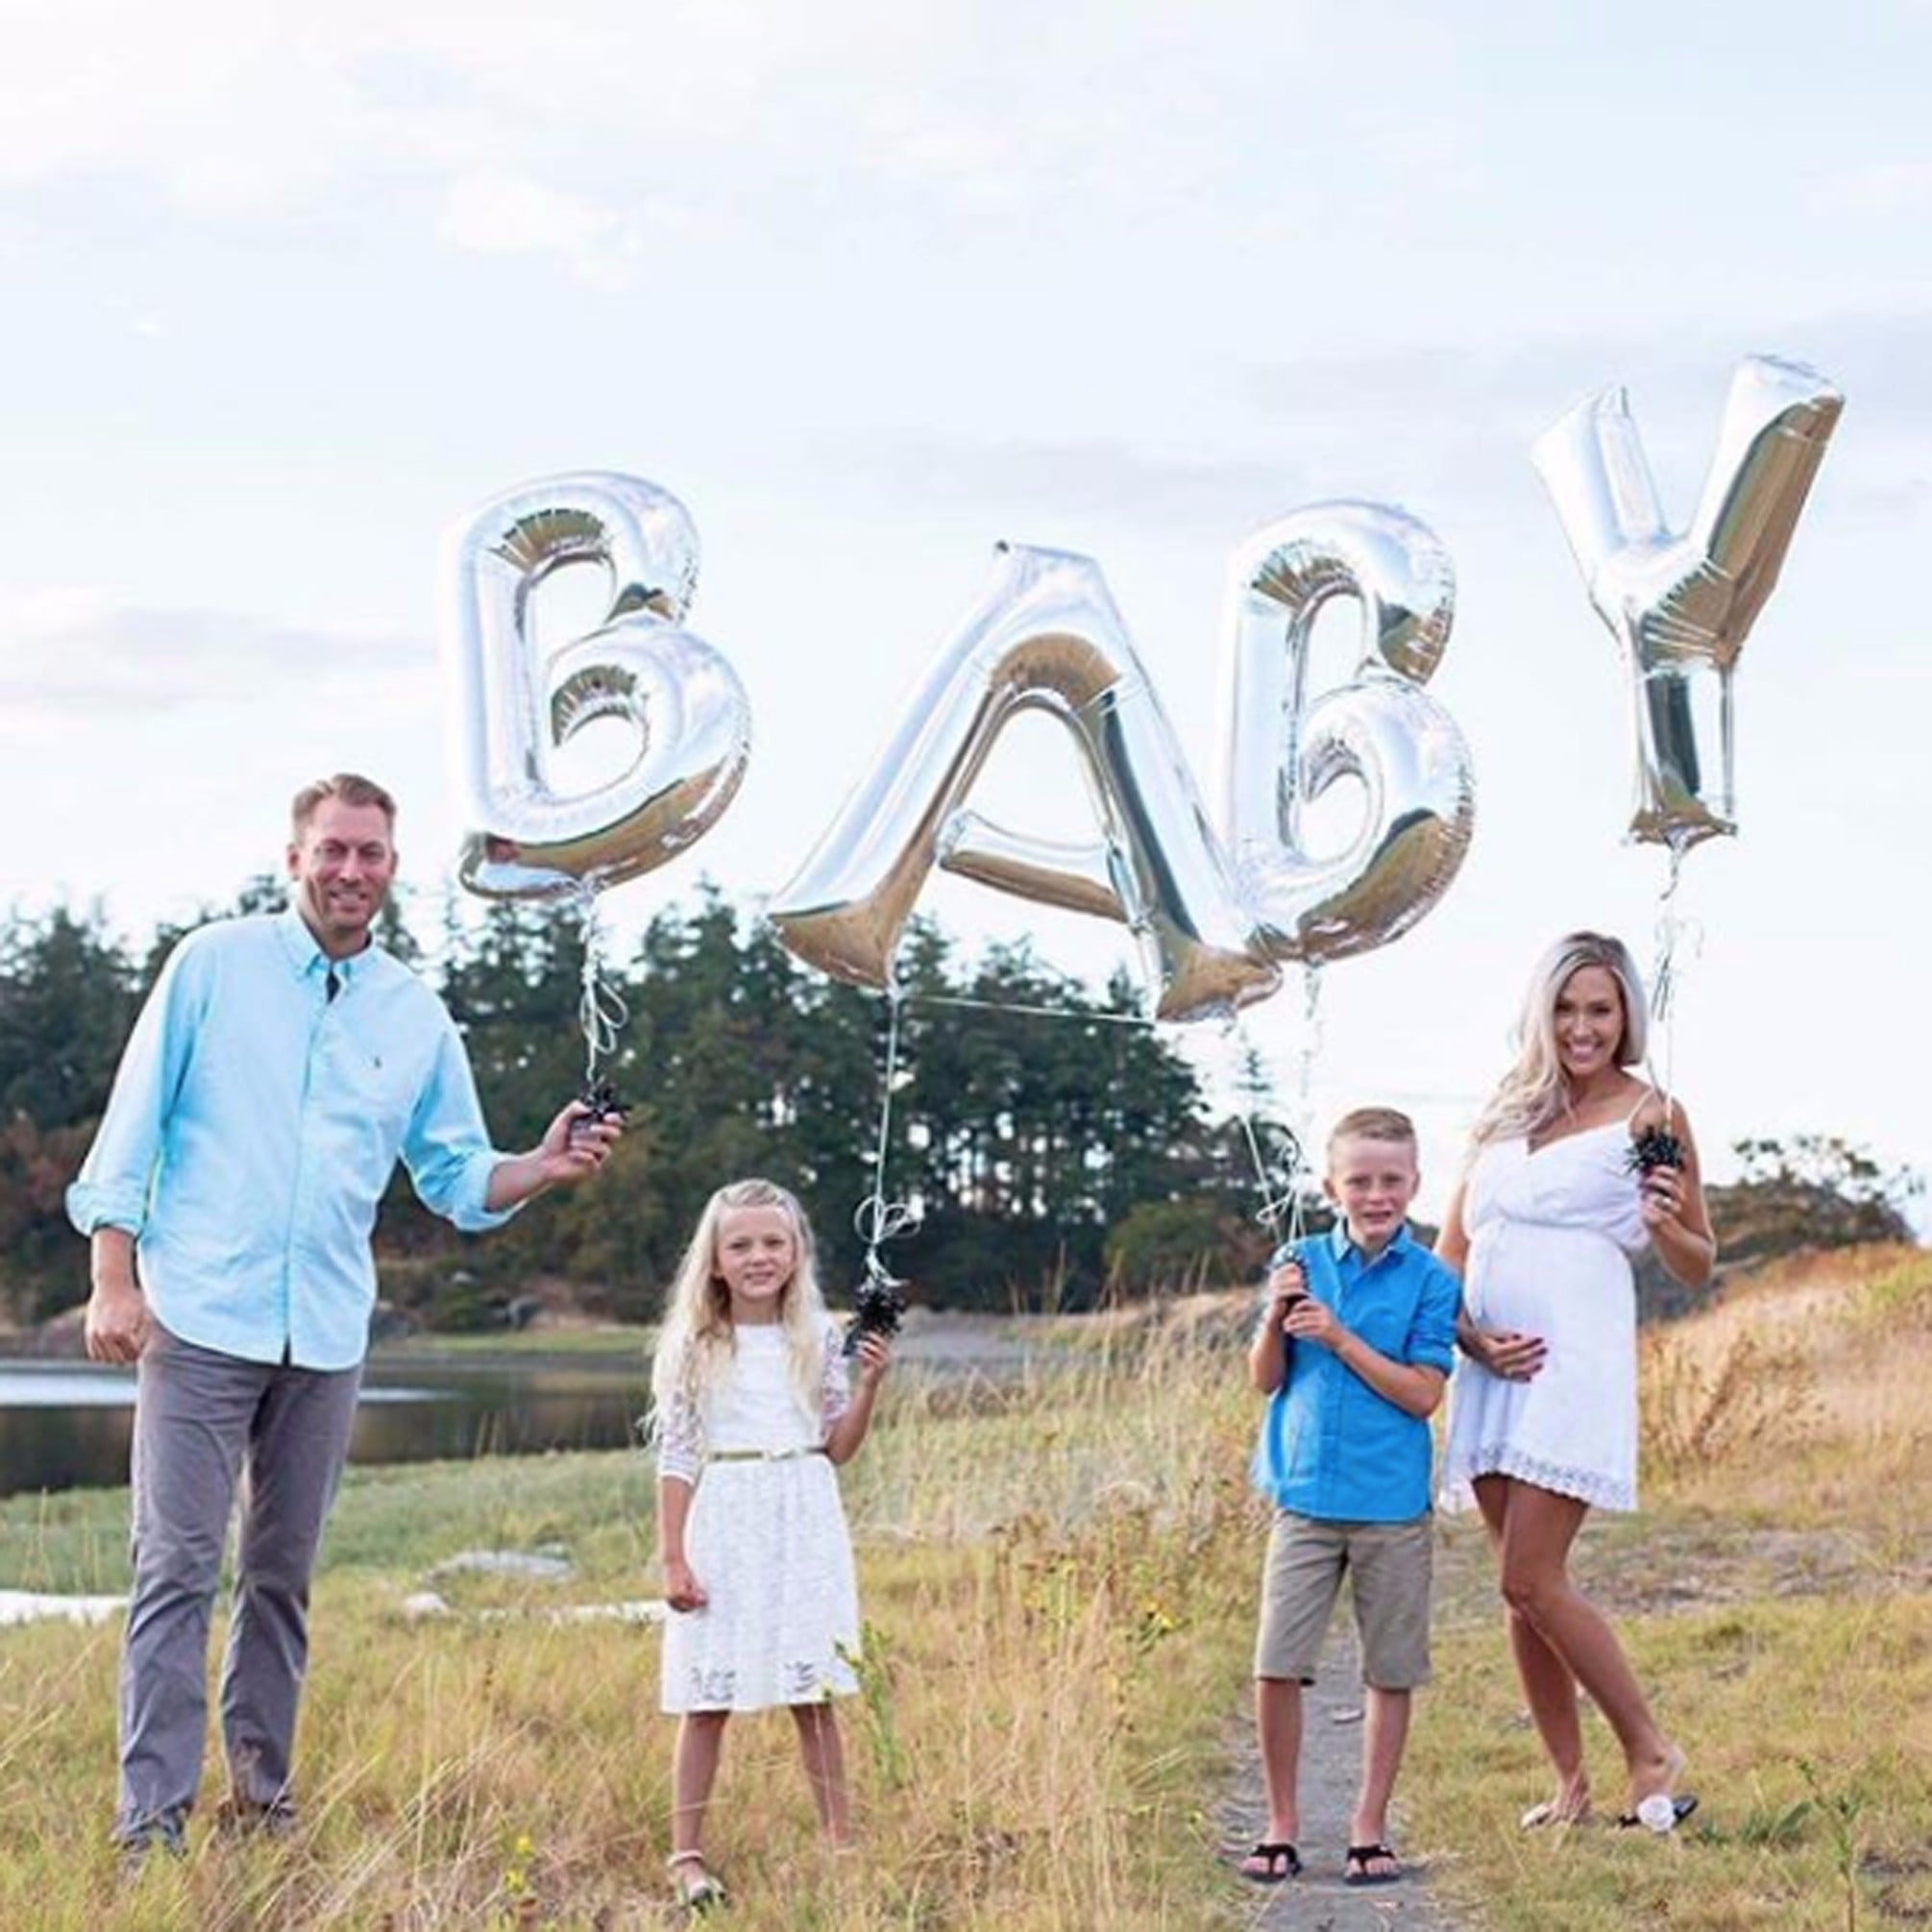 pregnancy announcement ideas if you already have kids popsugar family